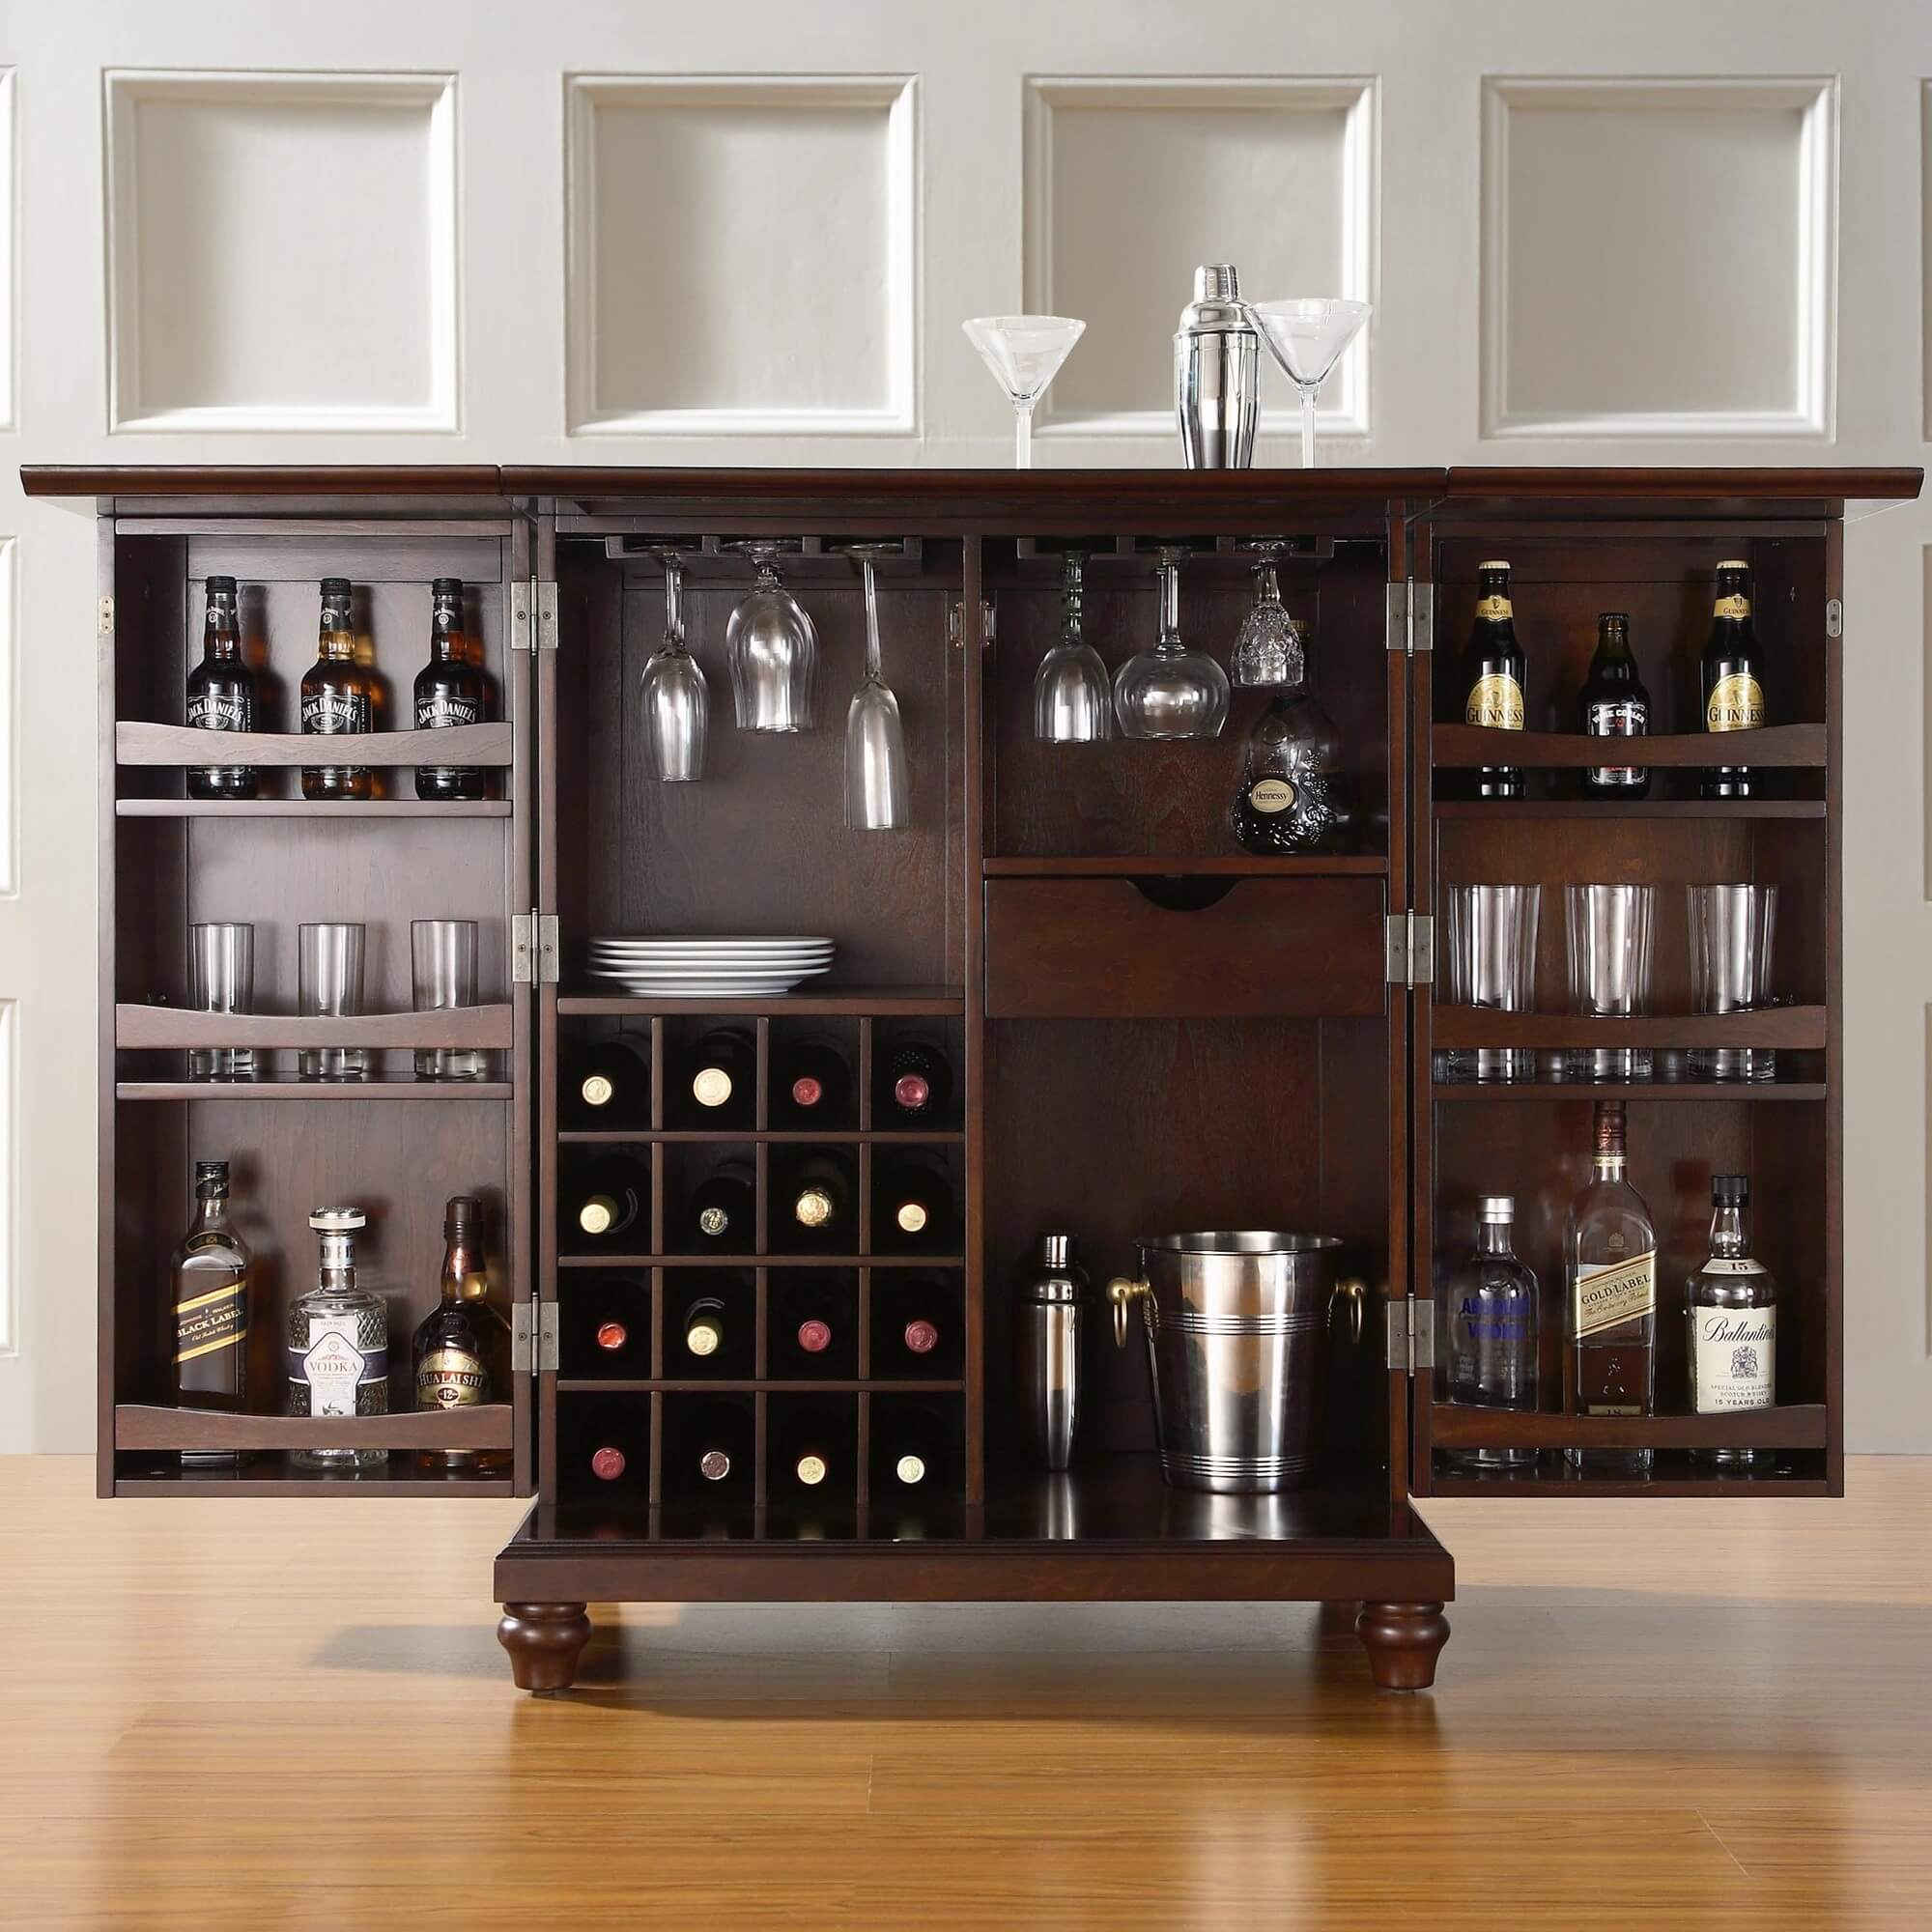 Rear storage view of elegant compact home bar cabinet set. 30 Top Home Bar Cabinets  Sets   Wine Bars  ELEGANT   FUN